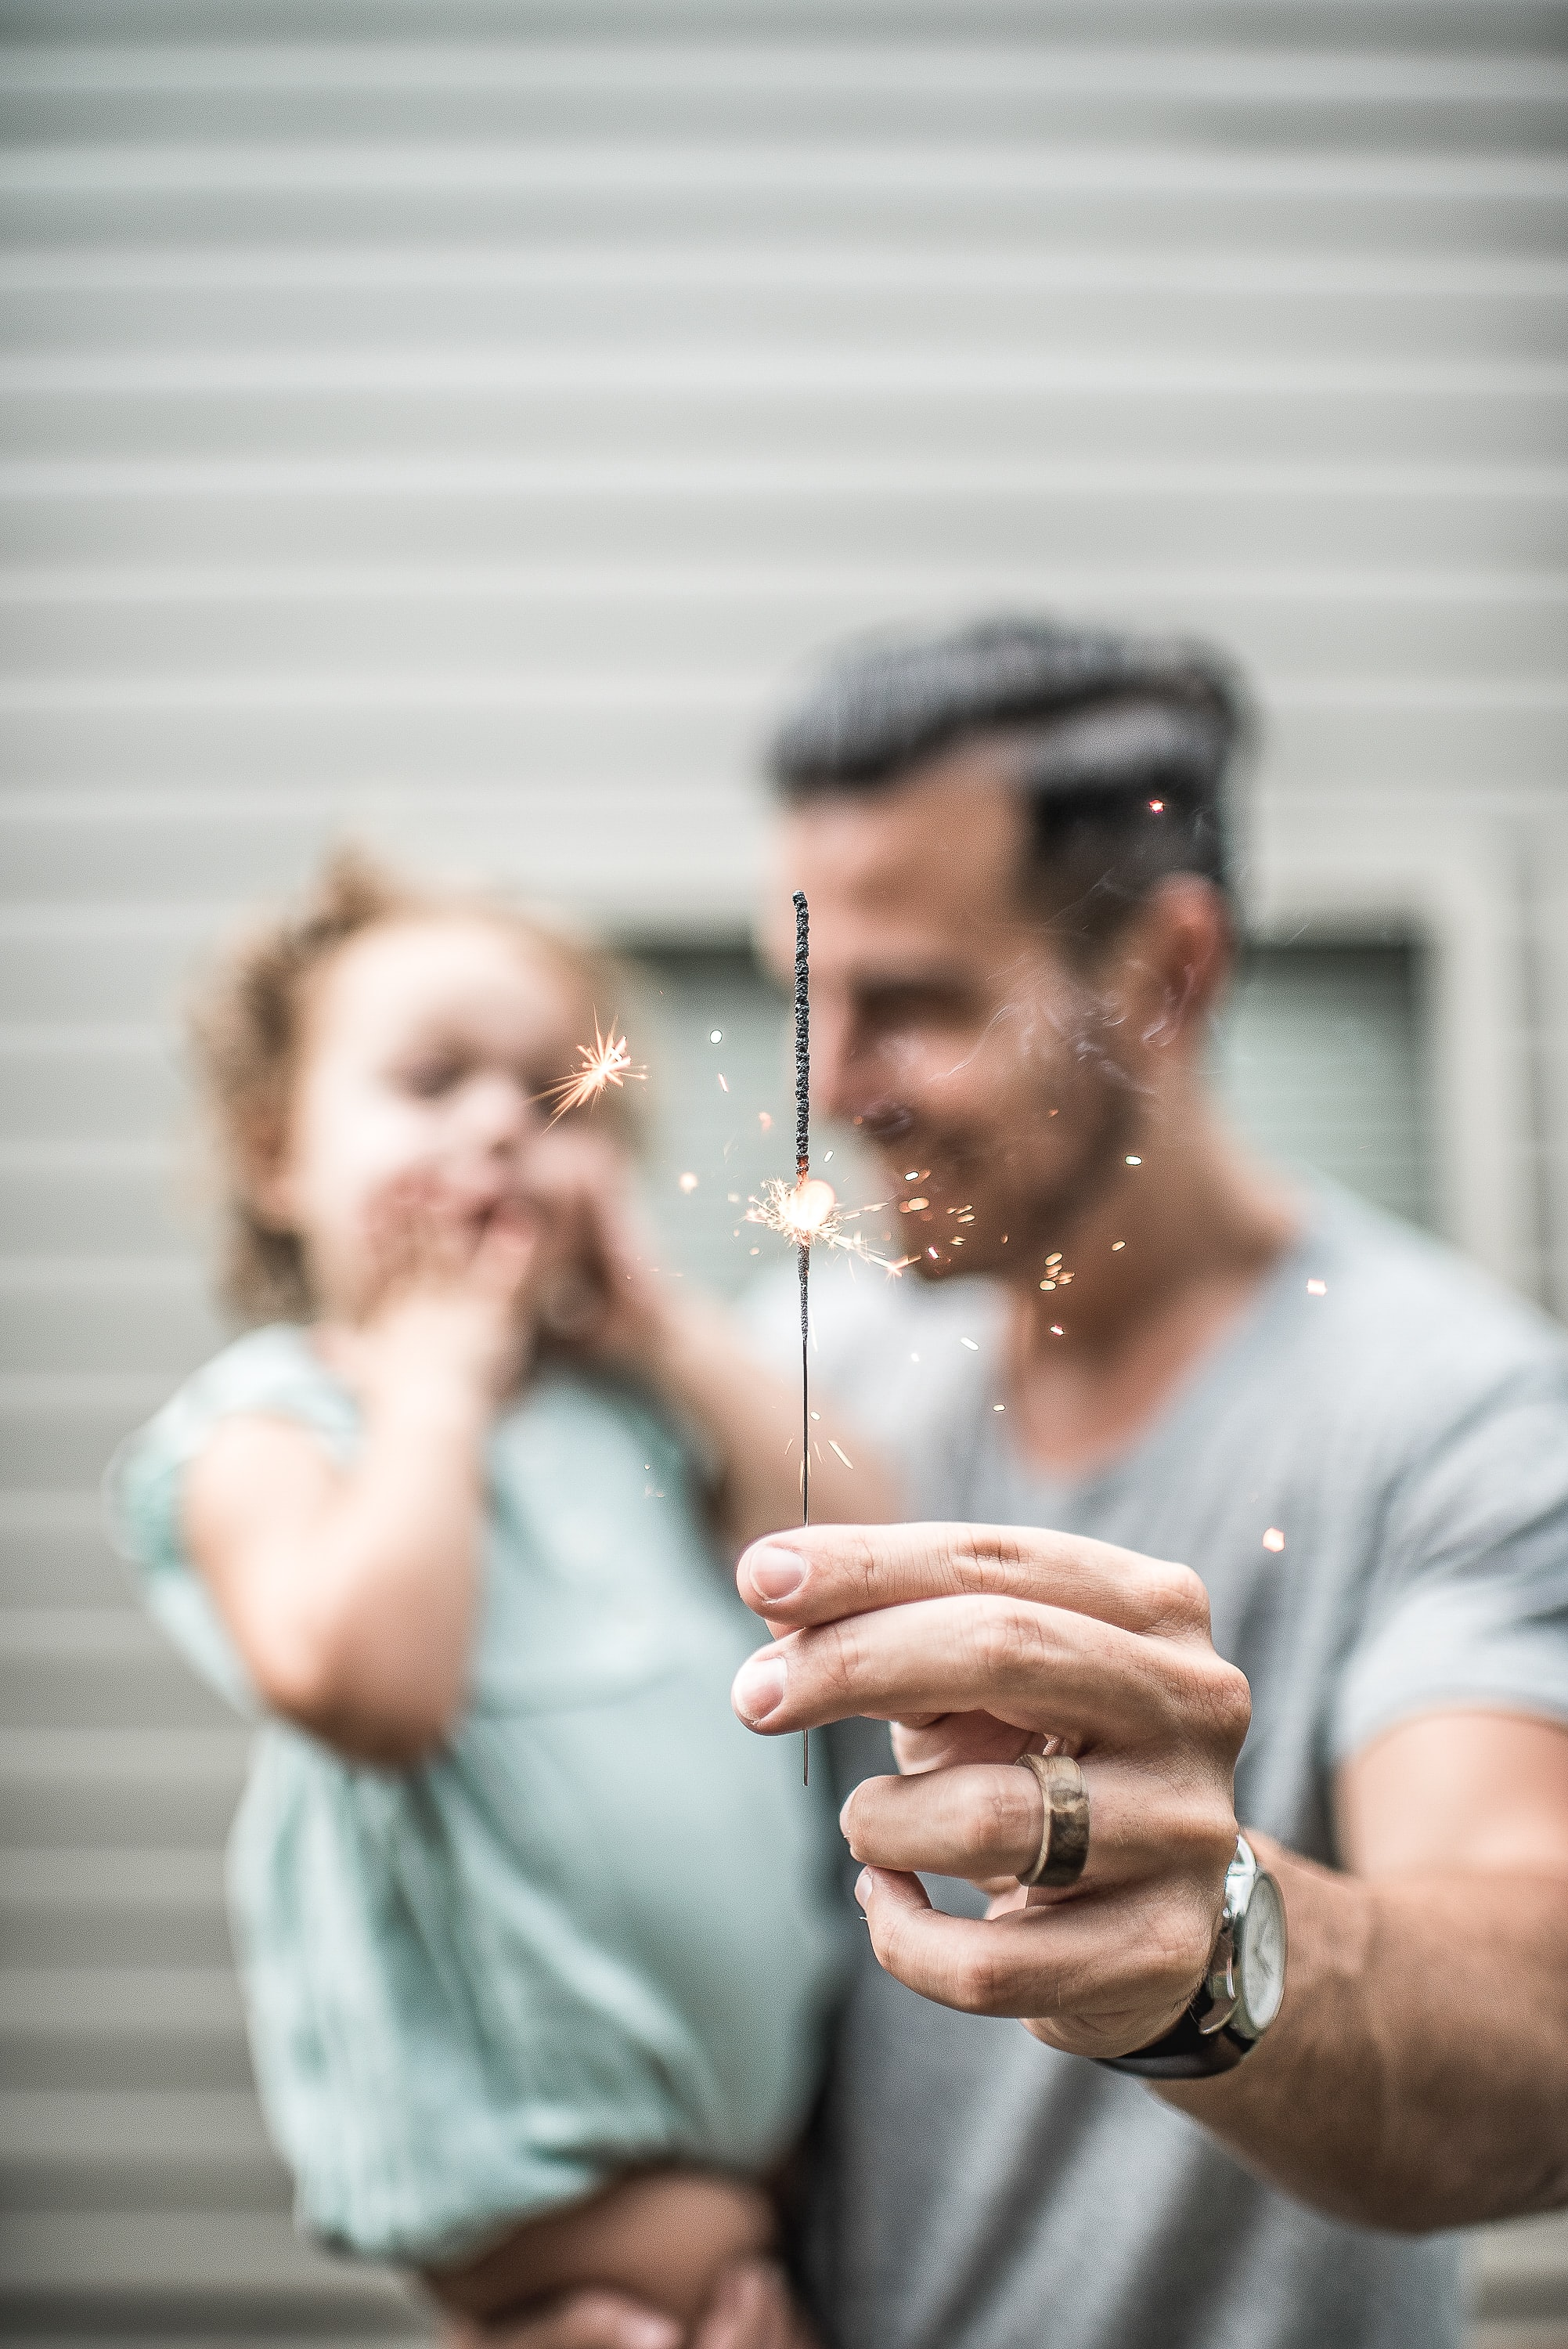 Sharply in foreground, a father's hand holds up a sparkler as he holds his delighted daughter in other